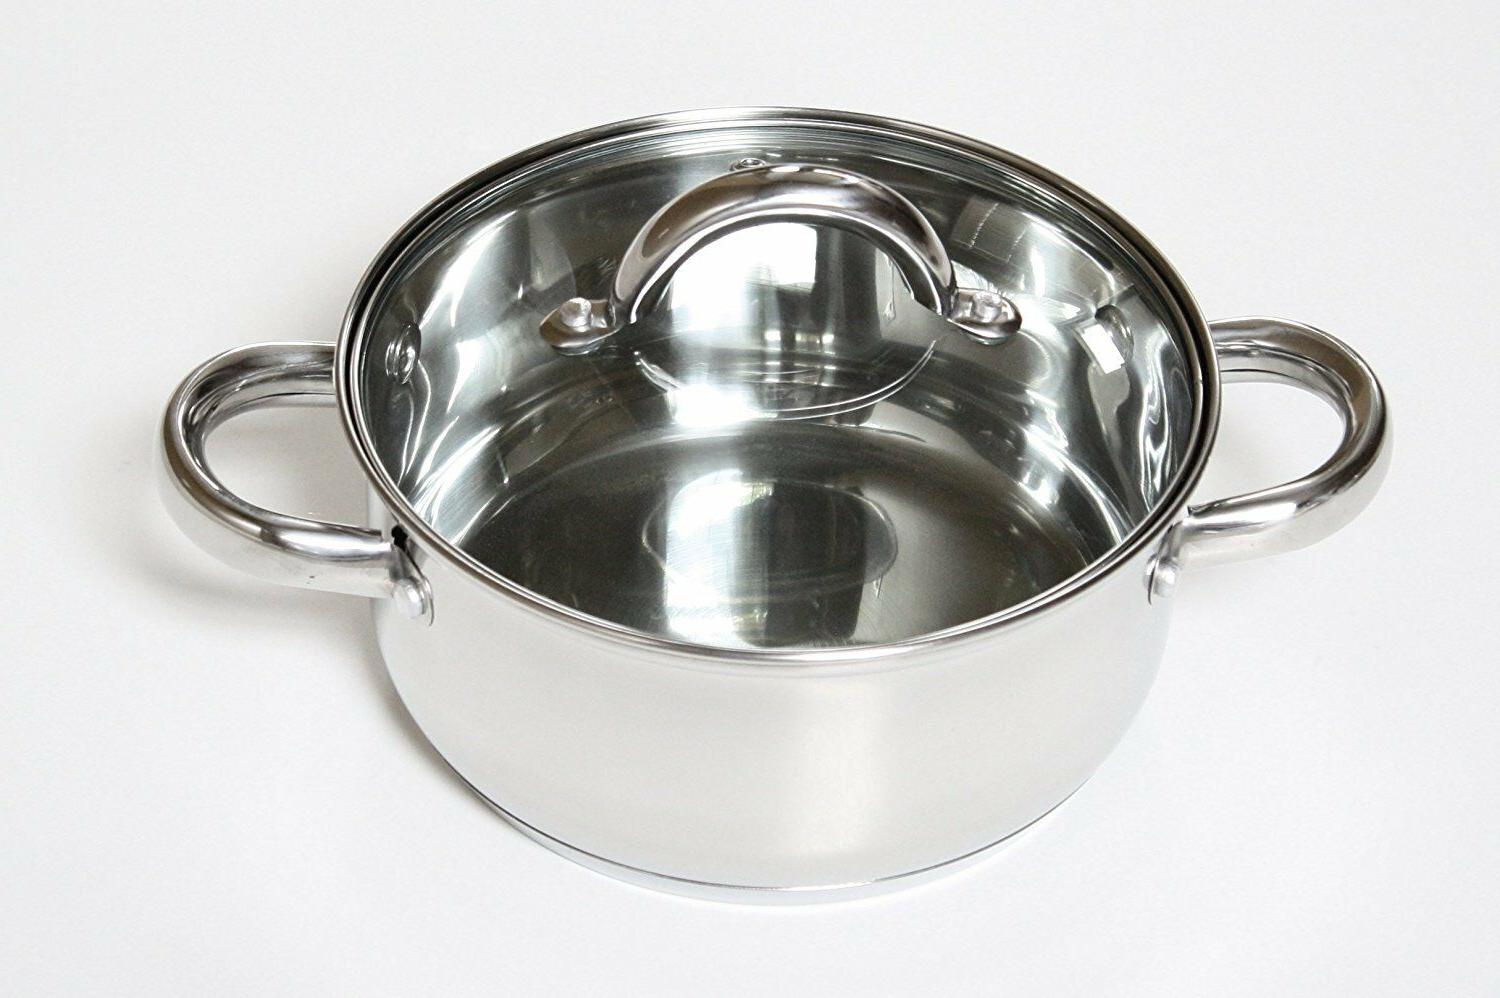 Stainless Cookware Set Pots Pans Frying 12 Pc NEW